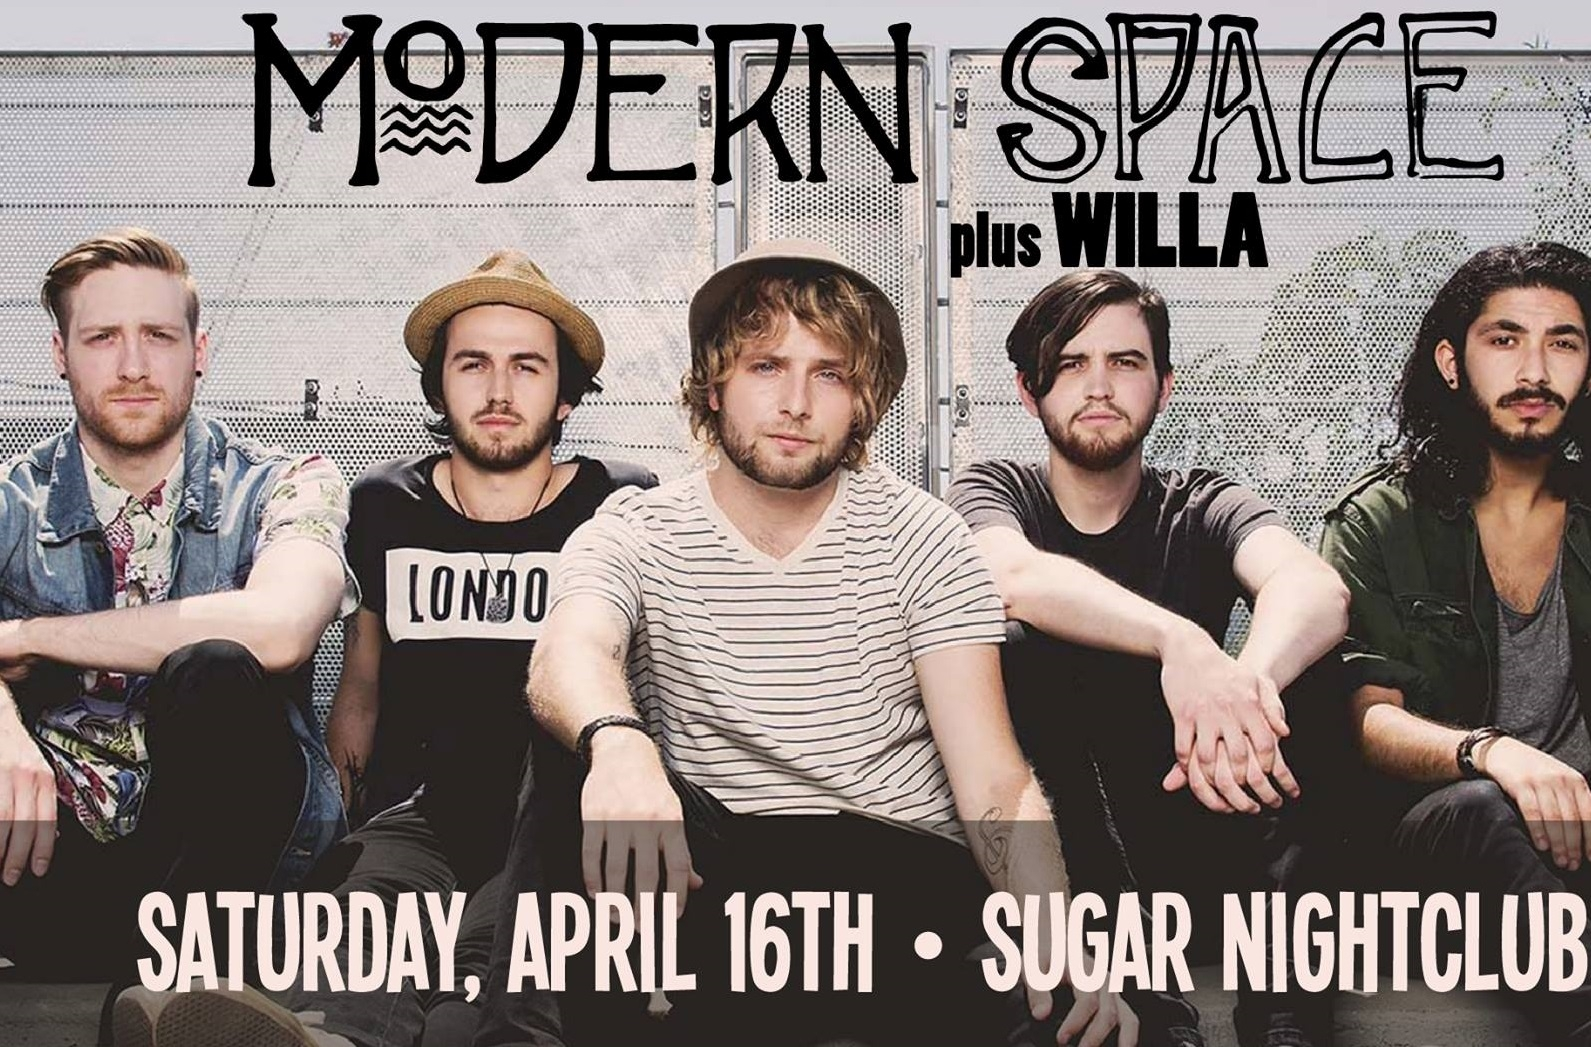 Concert Watch: Modern Space at Sugar Nightclub, April 16th